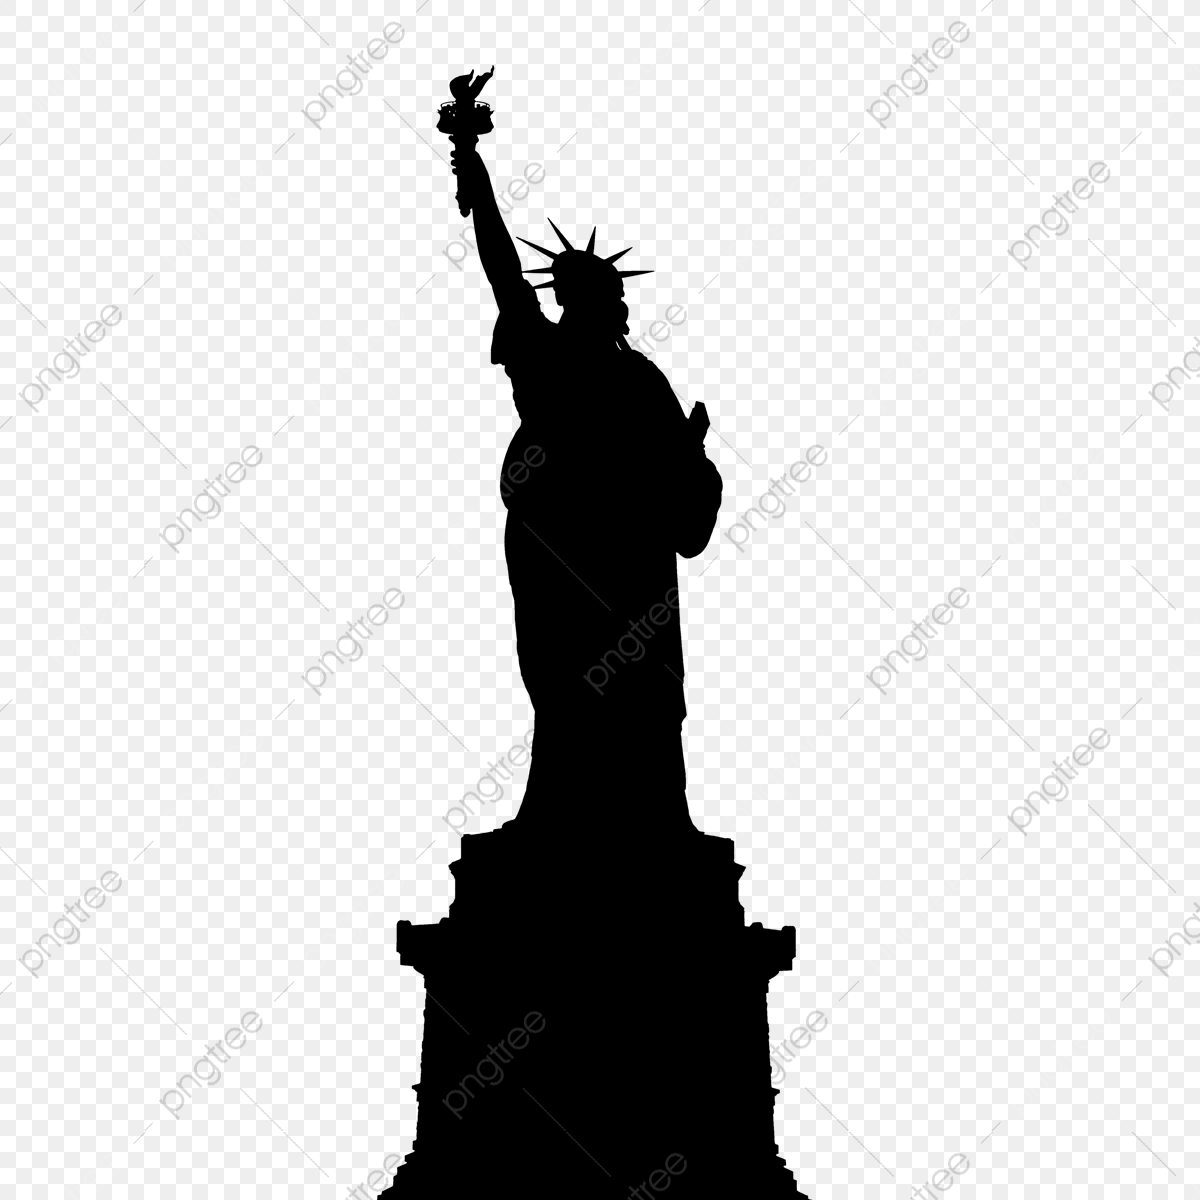 Silhouette Liberty, Png, Statue, Liberty PNG Transparent.